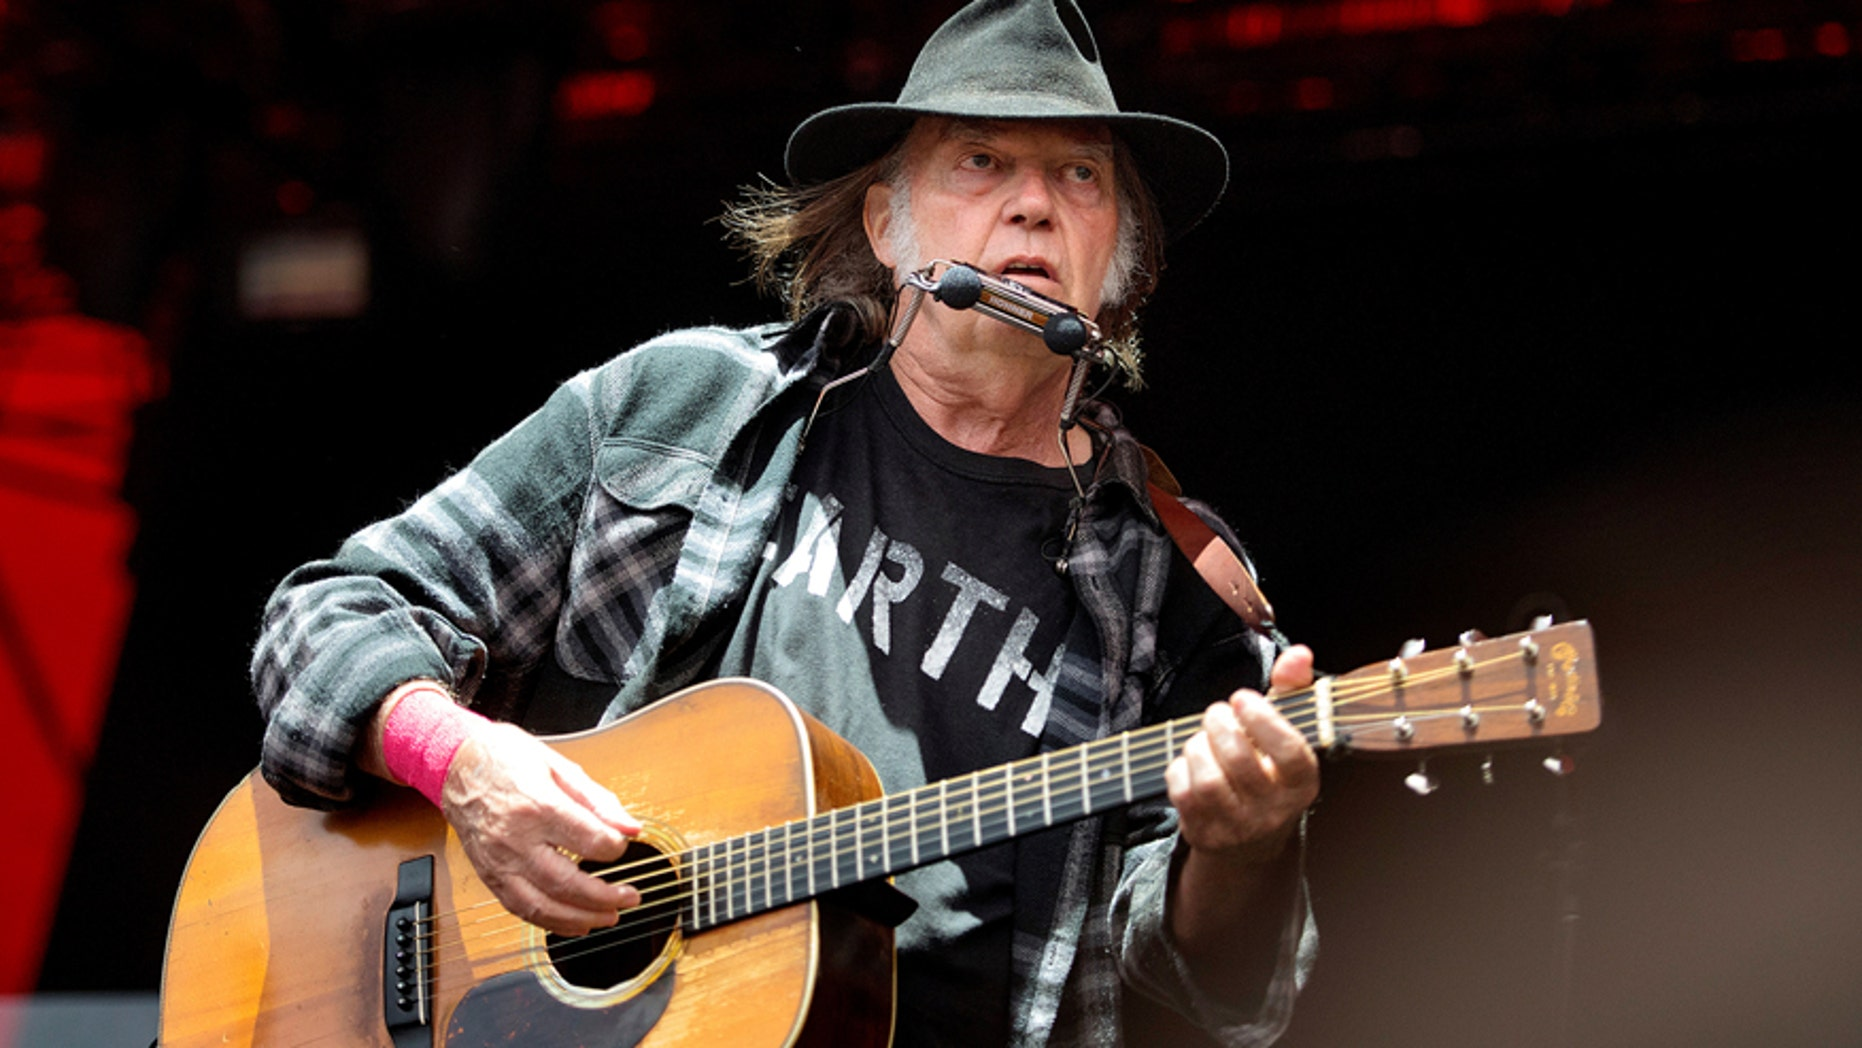 Canadian singer-songwriter Neil Young performs at the Orange Stage at the Roskilde Festival in Roskilde, Denmark, on July 1, 2016.